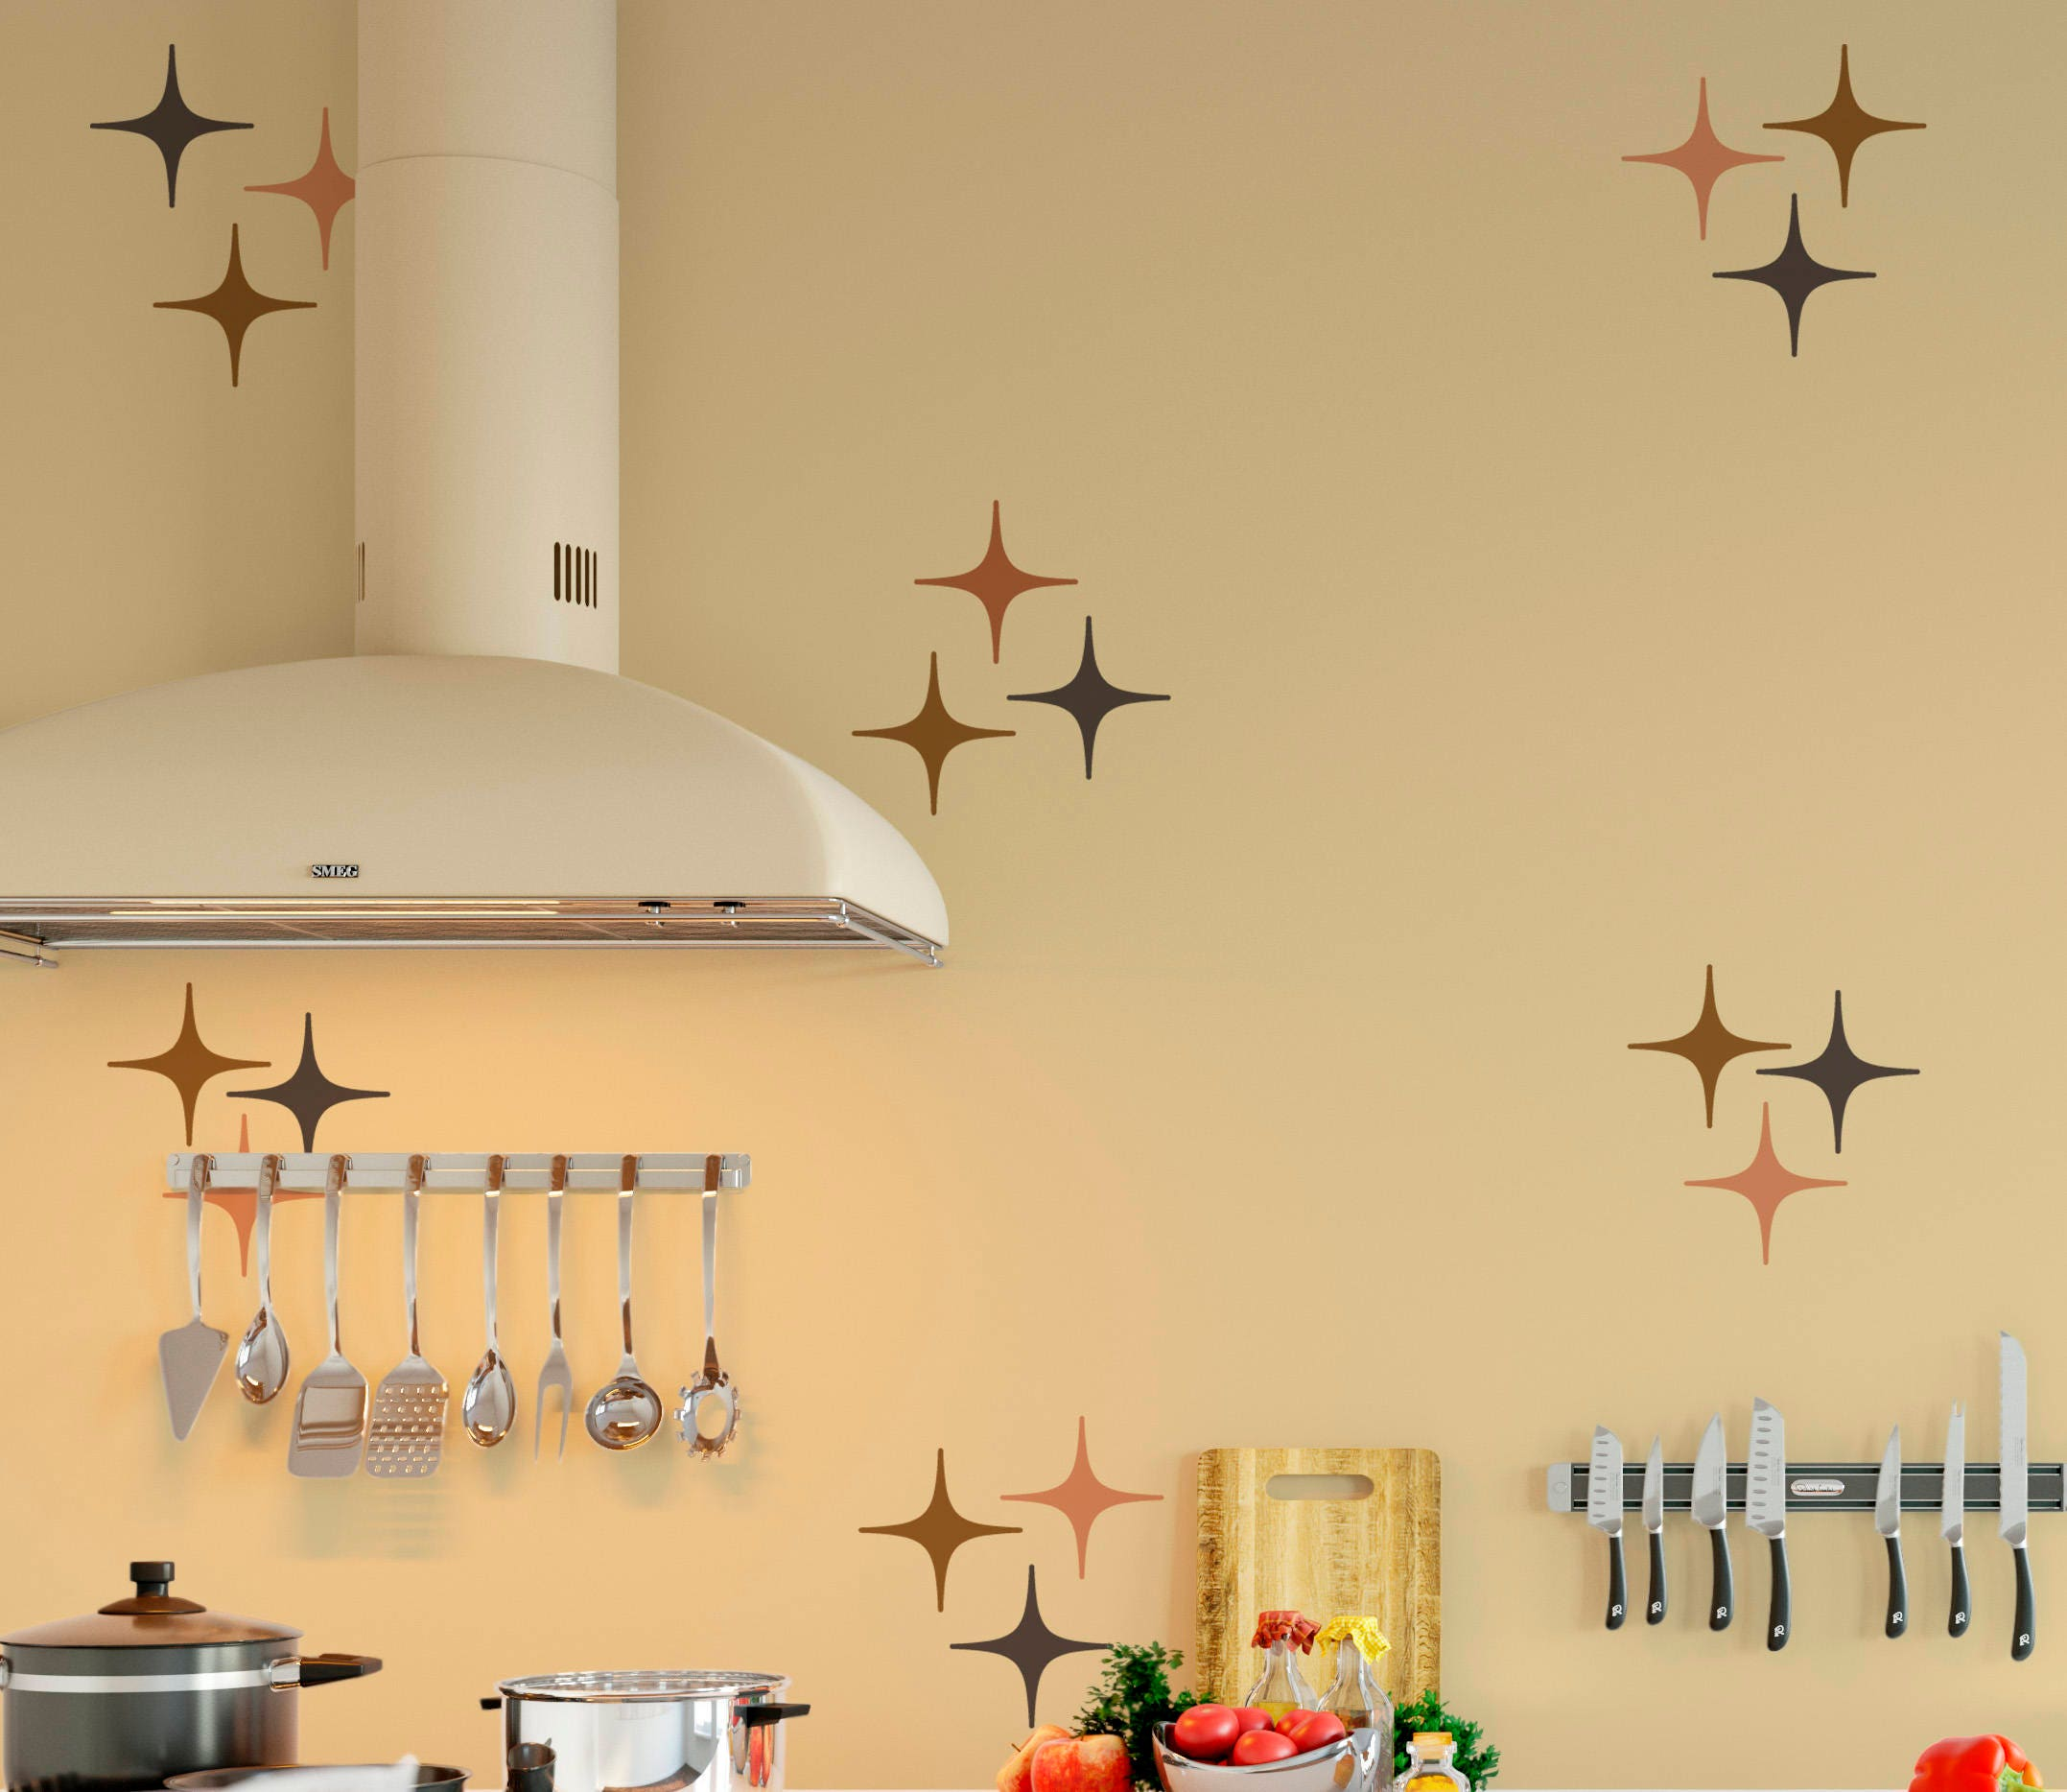 Wonderful Star Wall Decor Images - The Wall Art Decorations ...